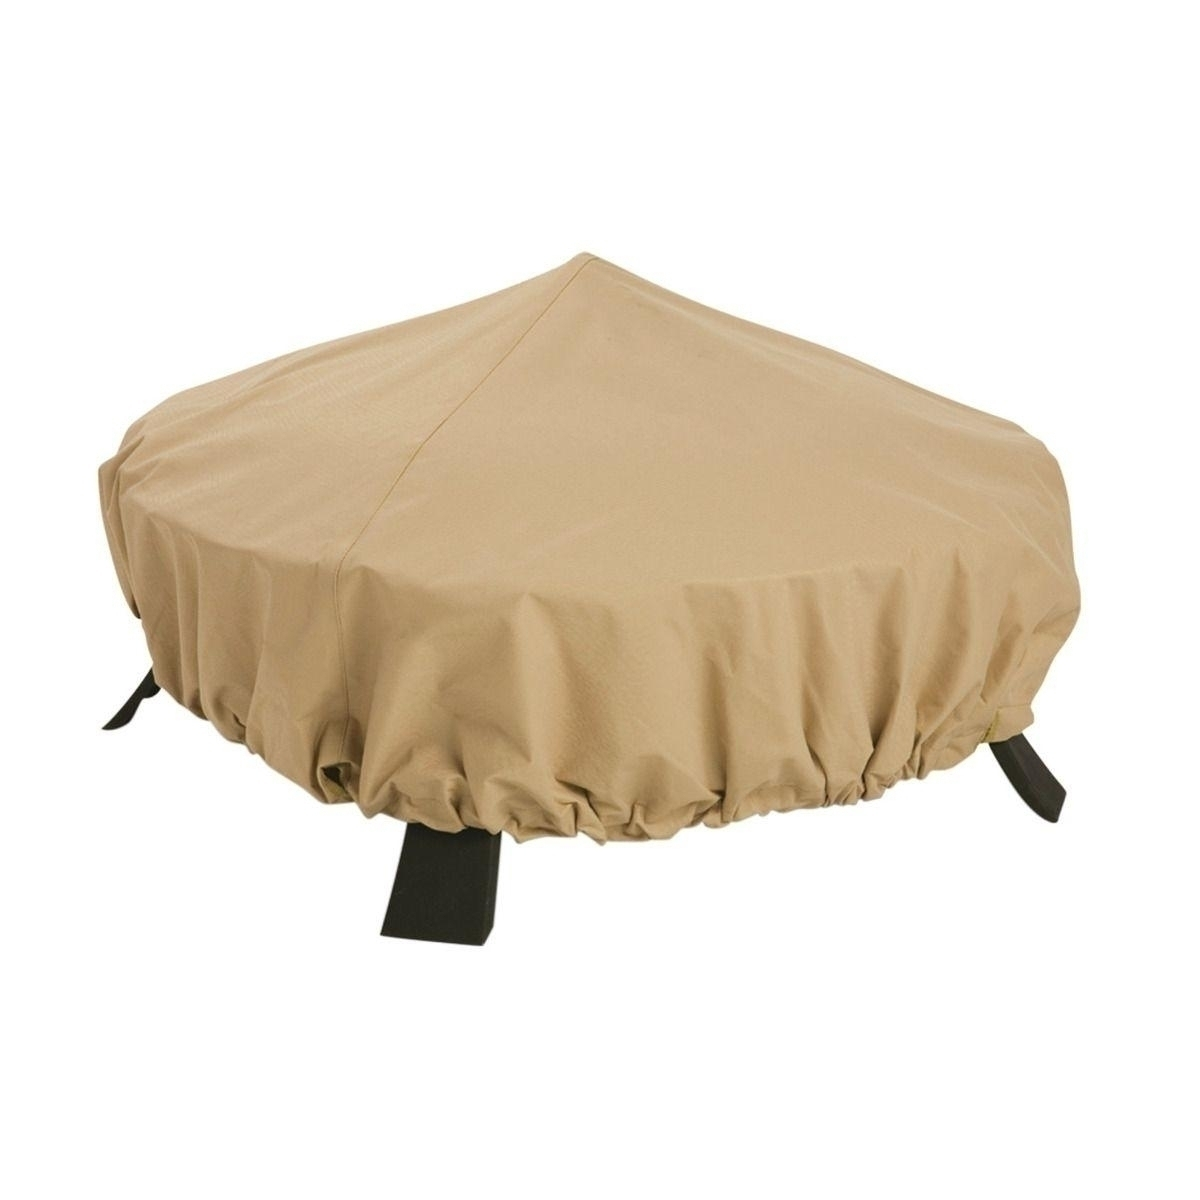 Firepit Cover - Full Coverage Sand - 30inch - 10cs - 59922-ec - Outdoor Living 59922-EC